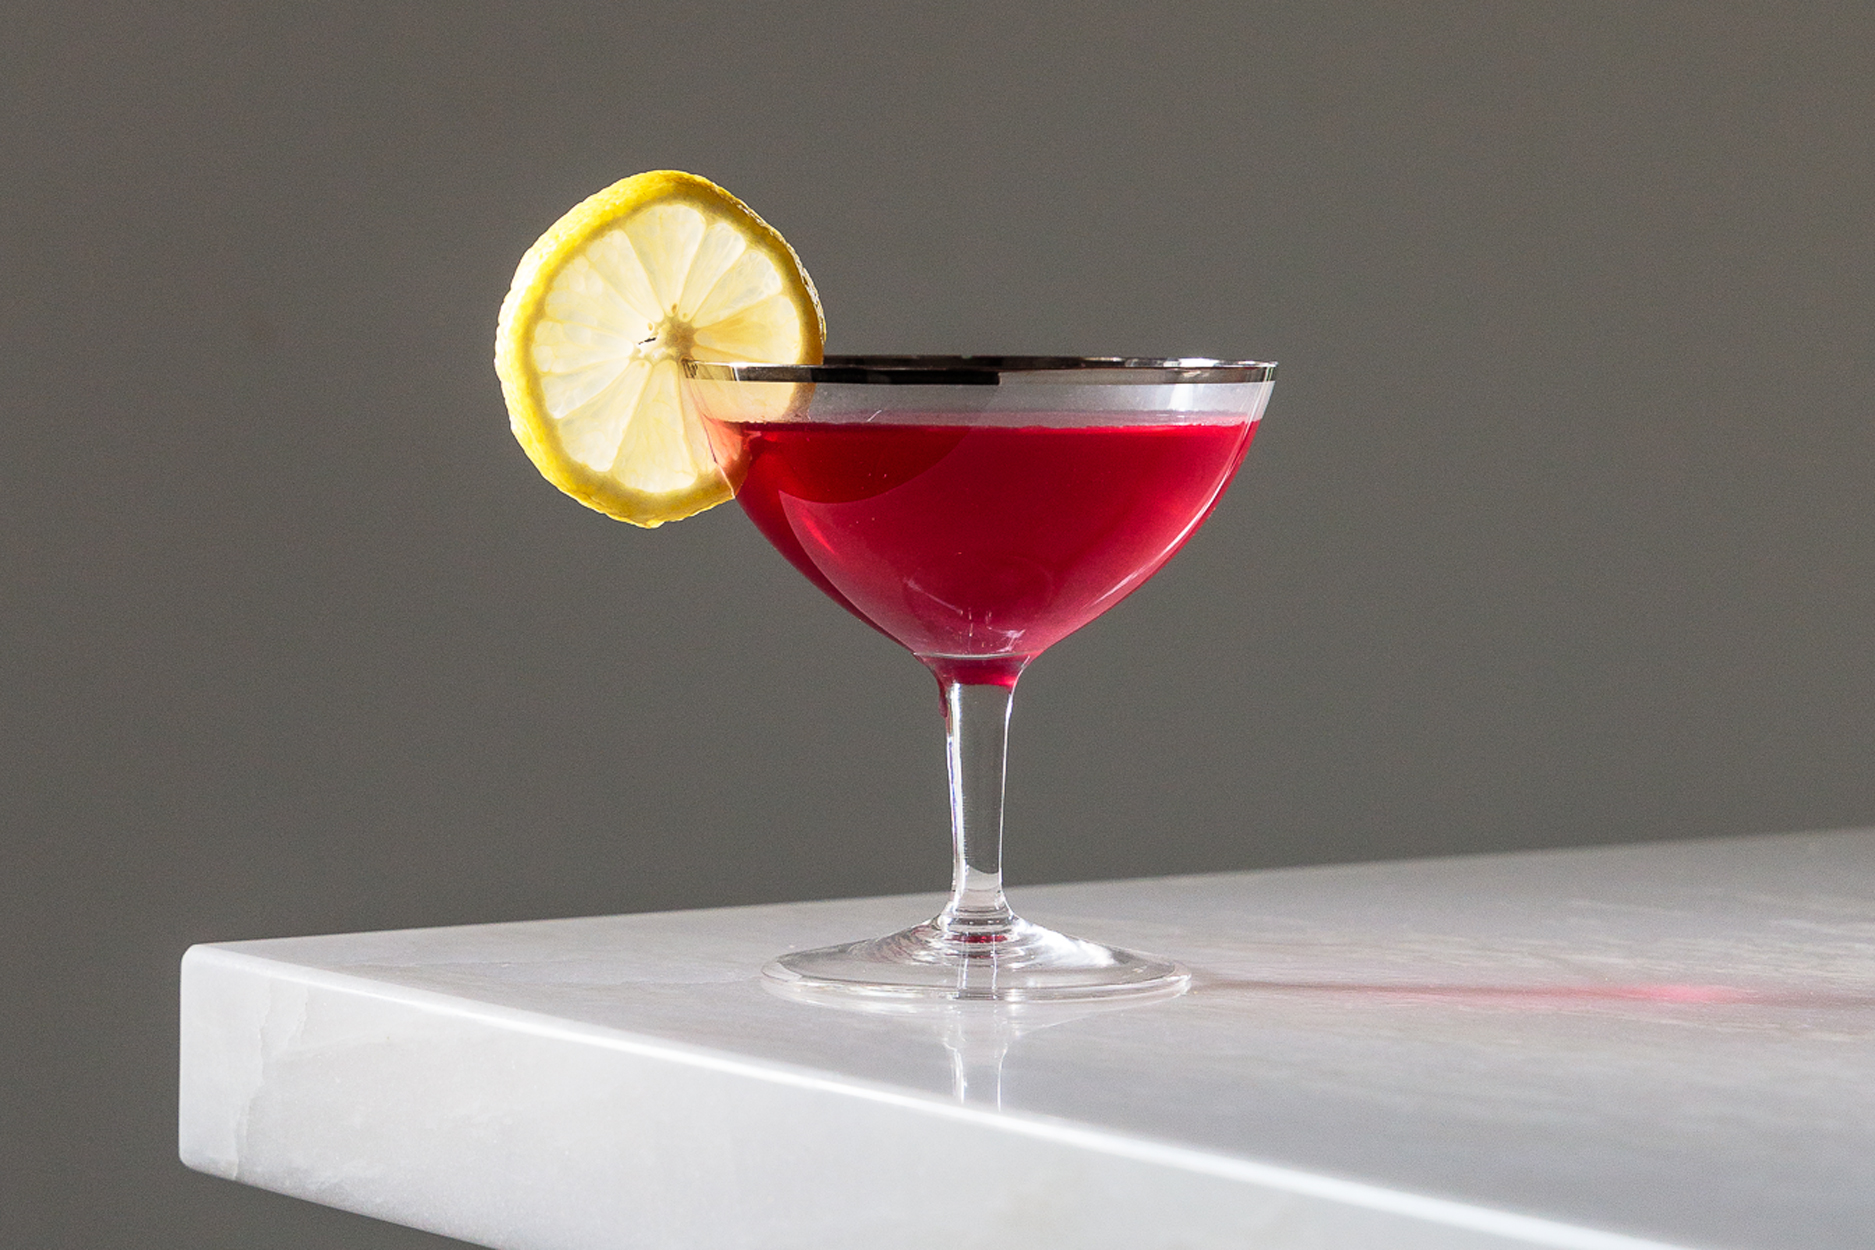 Beet and Lemon Shrub Recipe